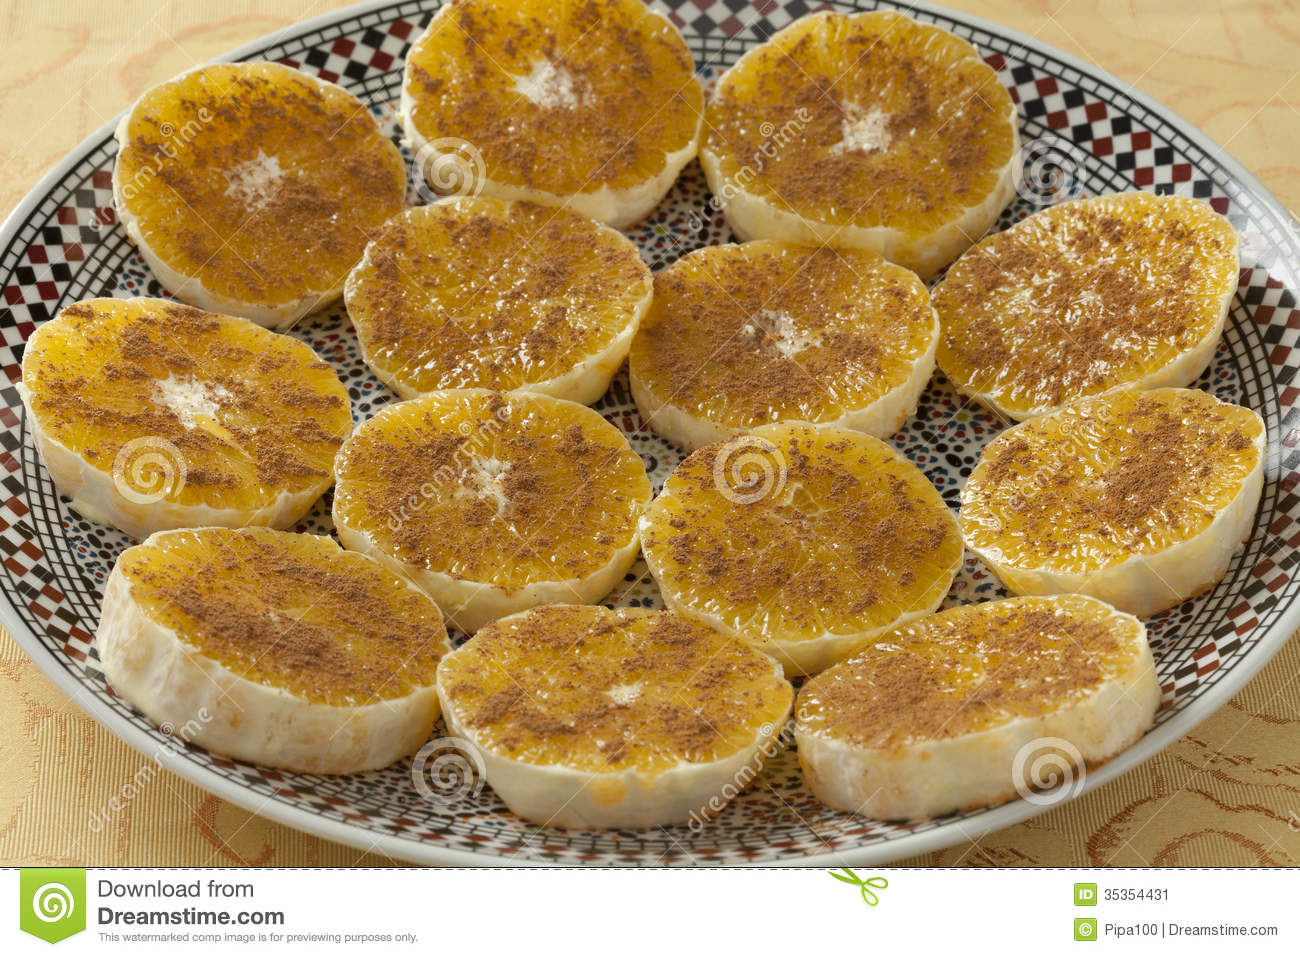 Traditional Moroccan orange slices with sugar and cinnamon as dessert.